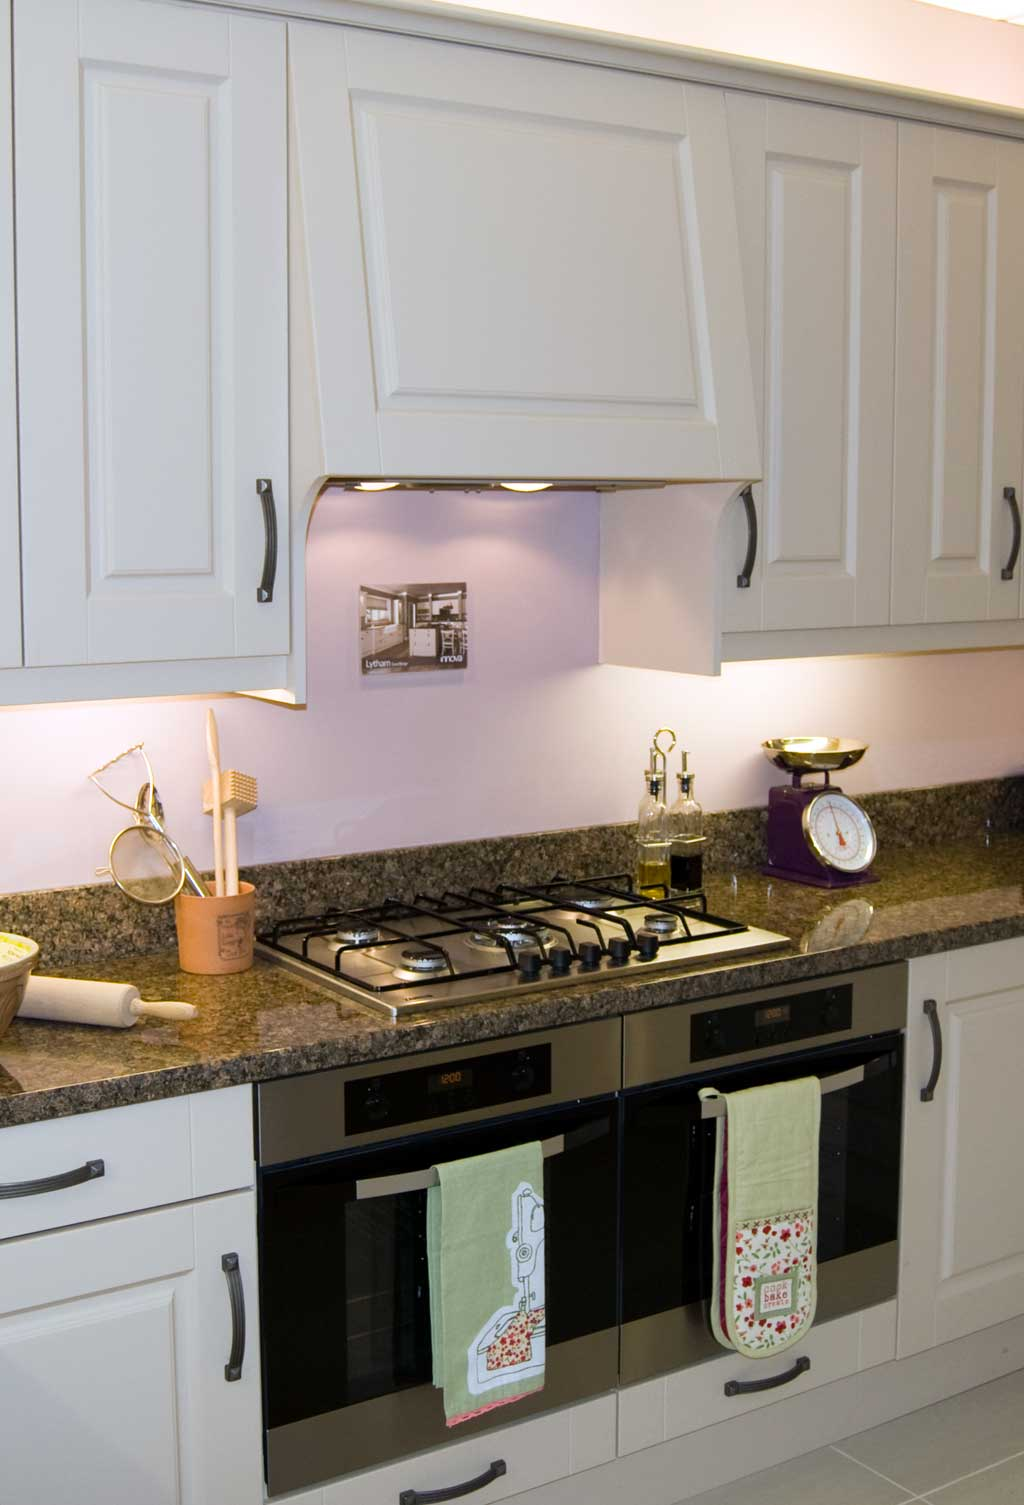 What Kitchen Accessories Or Features Are Available? - DIY ...